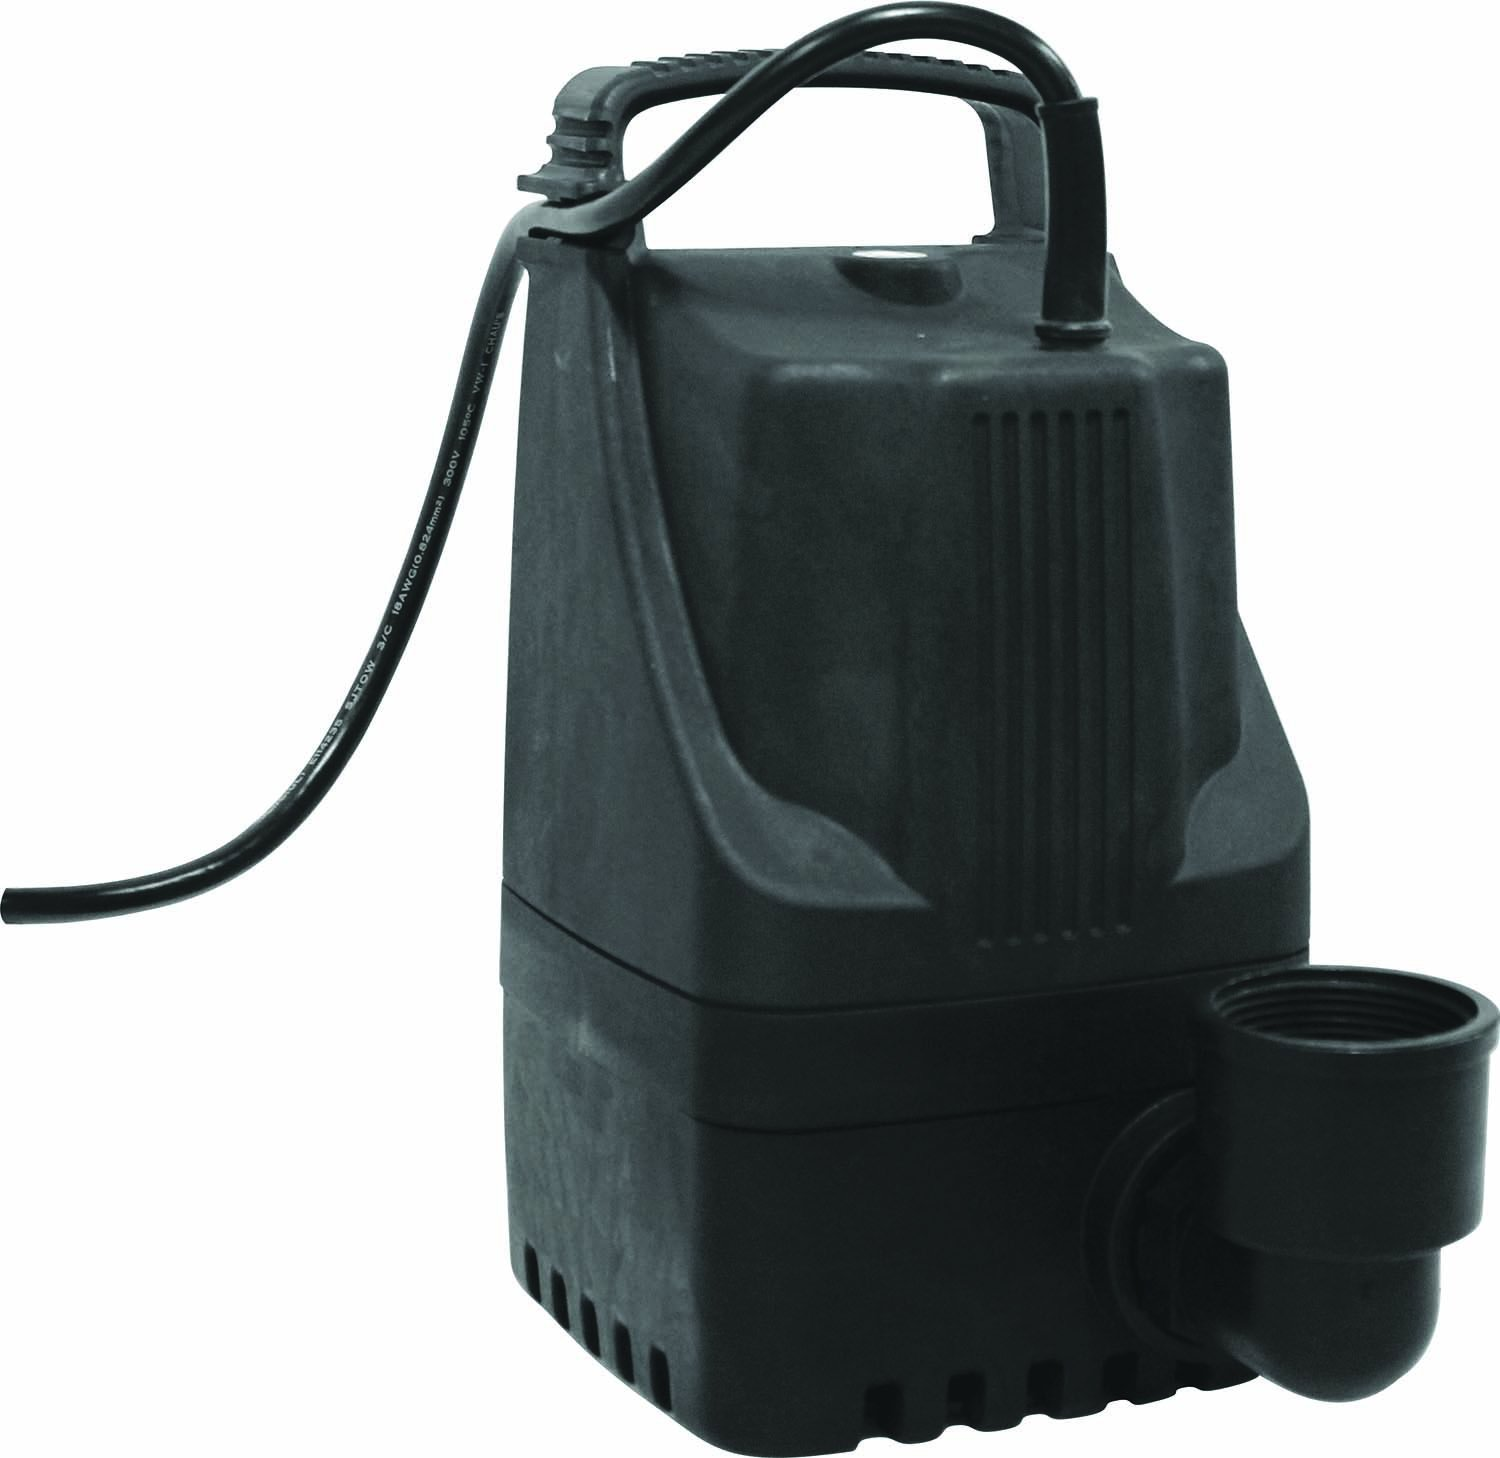 EasyPro Pond Products TLS4250 Spirit Pond and Waterfall Pumps, 4250 GPH